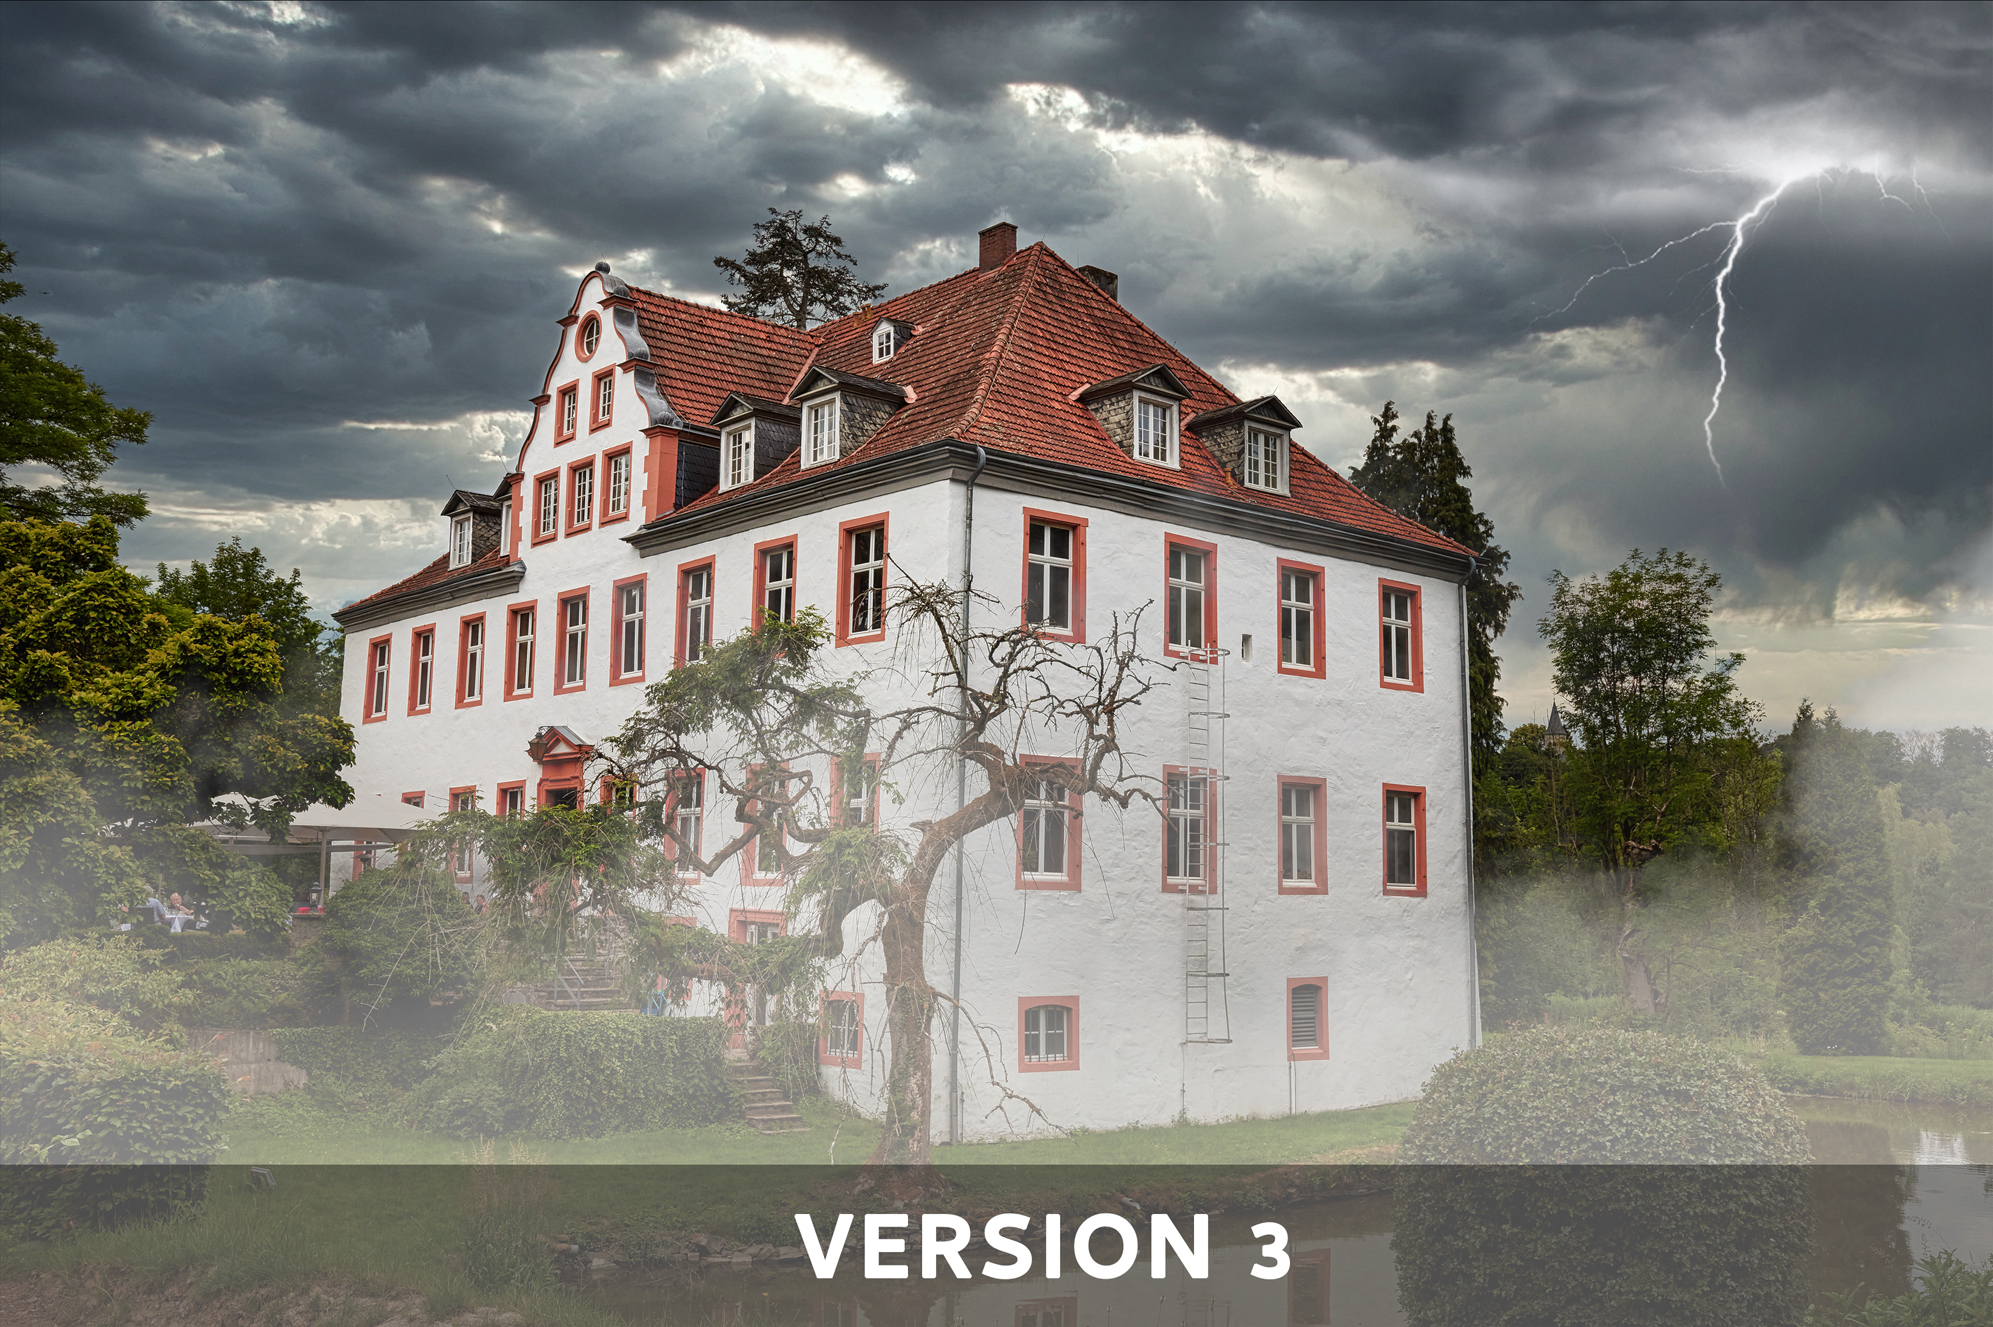 Schloss Georghausen Version 3